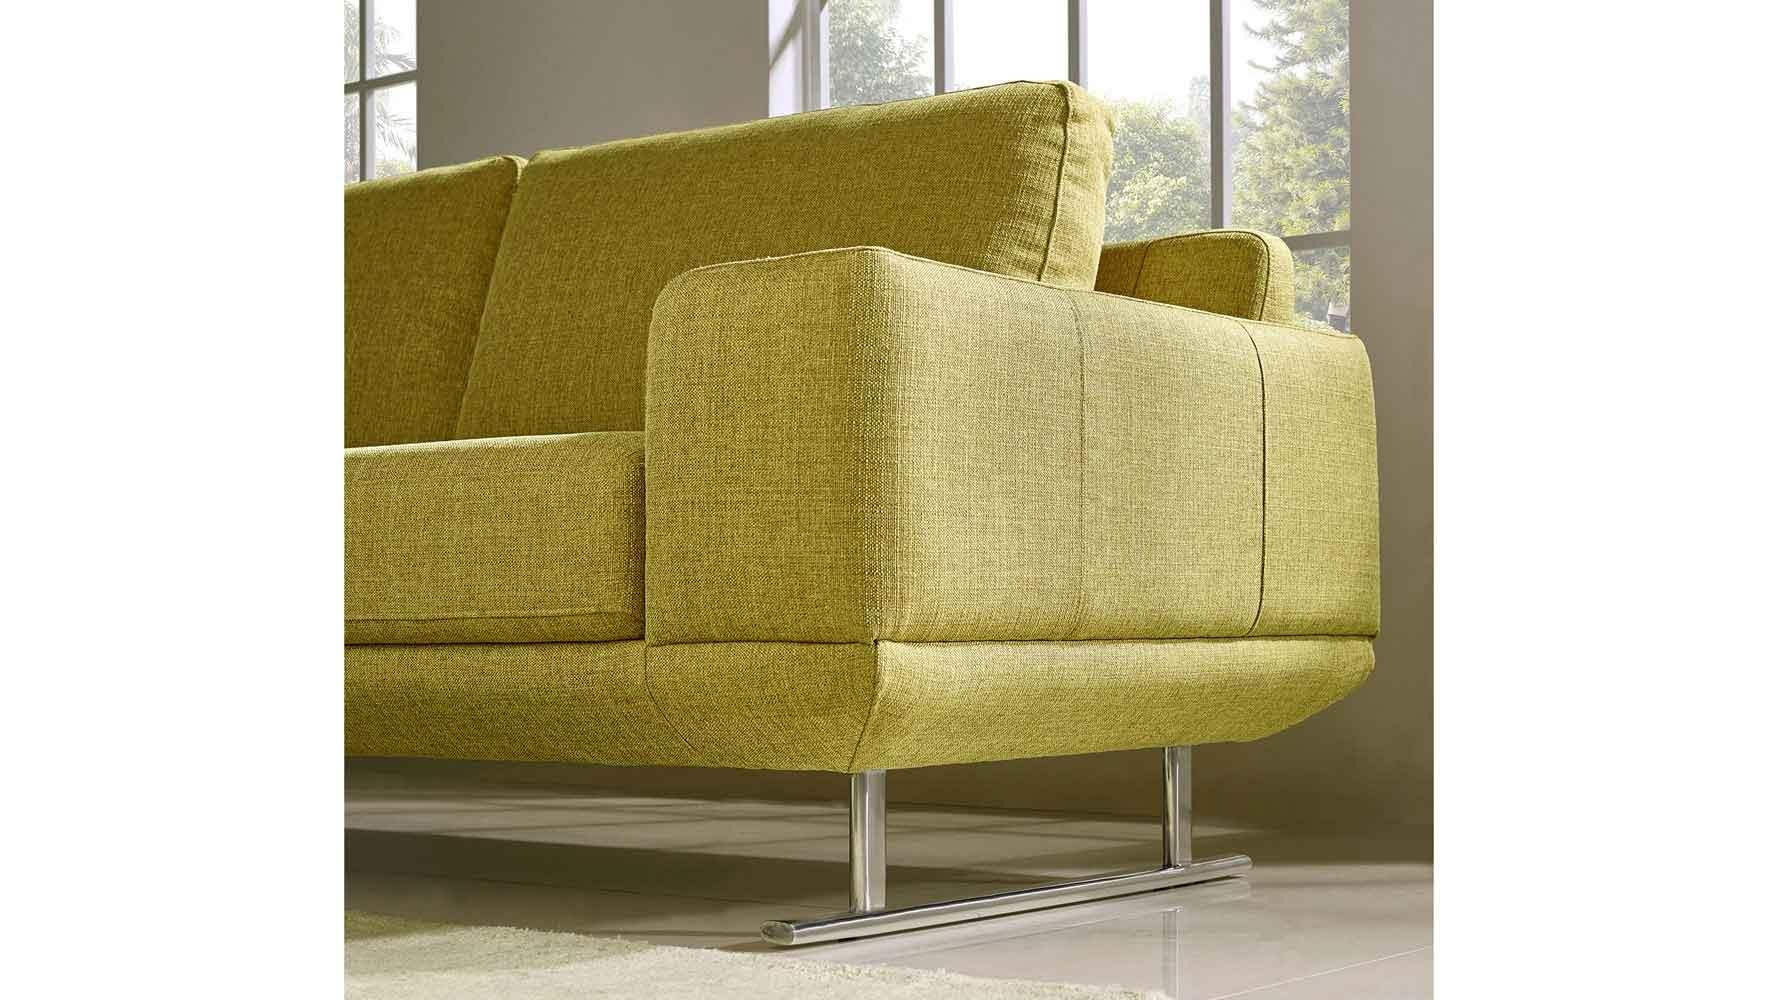 Modern Chartreuse Fabric Della Sofa And Loveseat Set | Zuri Furniture In Chartreuse Sofas (View 15 of 20)